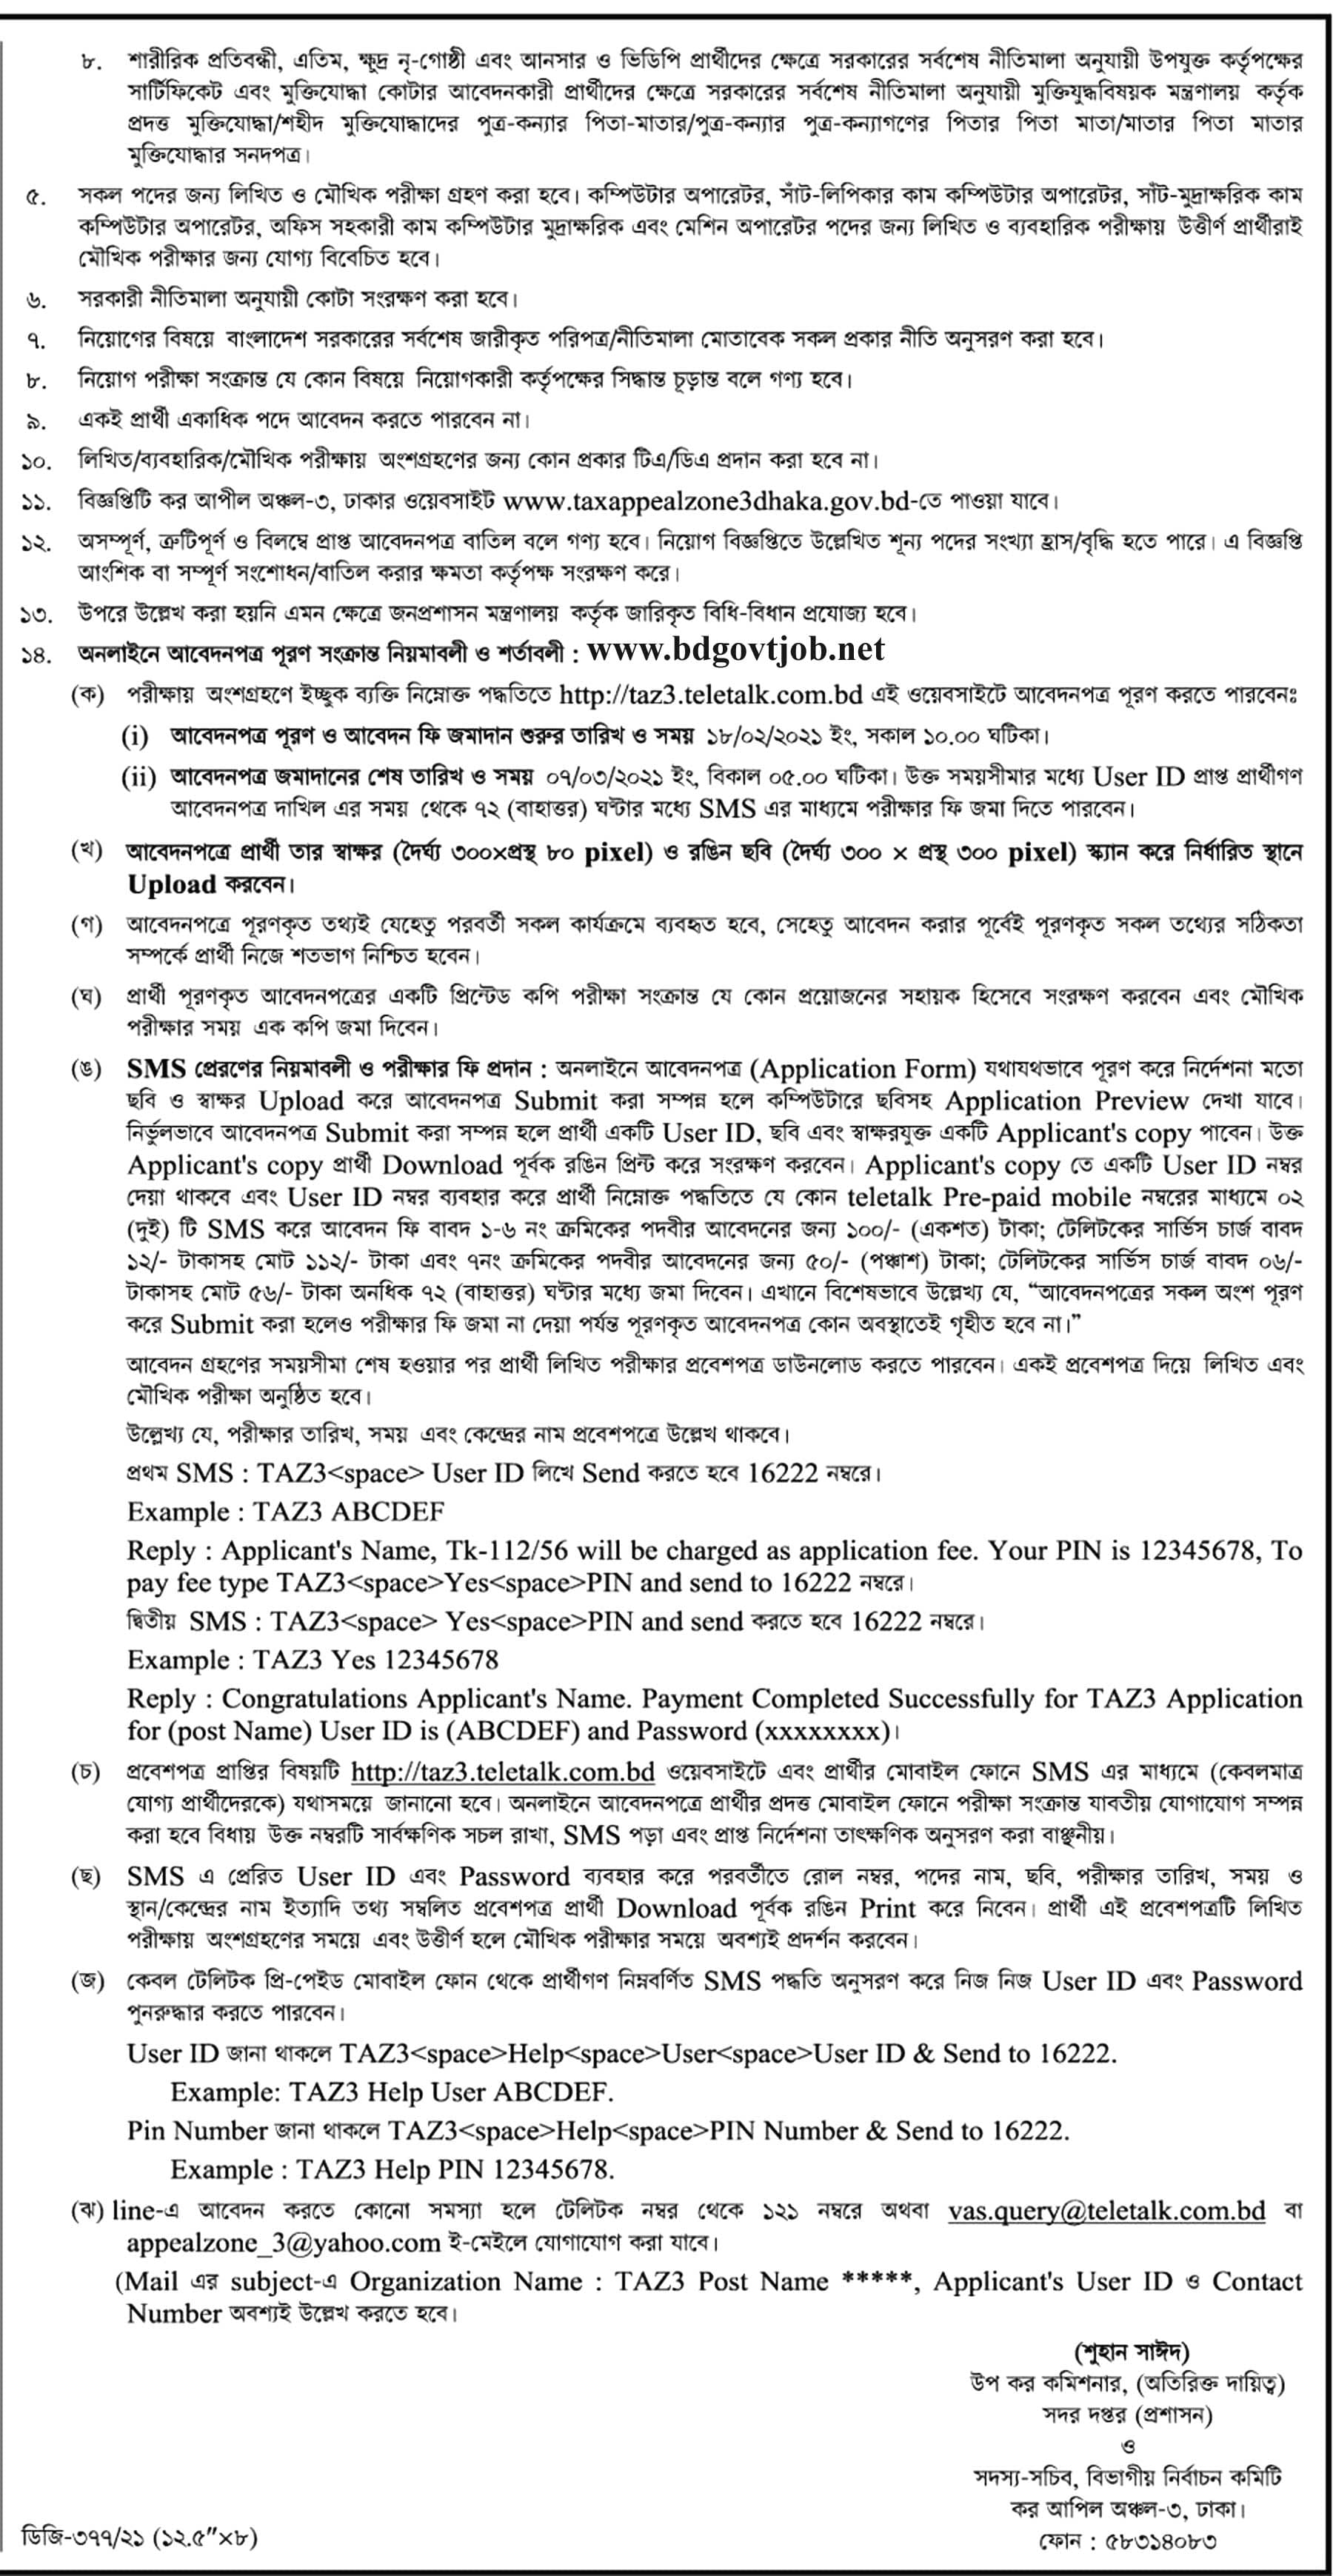 Taxes Zone-3 Dhaka Job Circular 2021